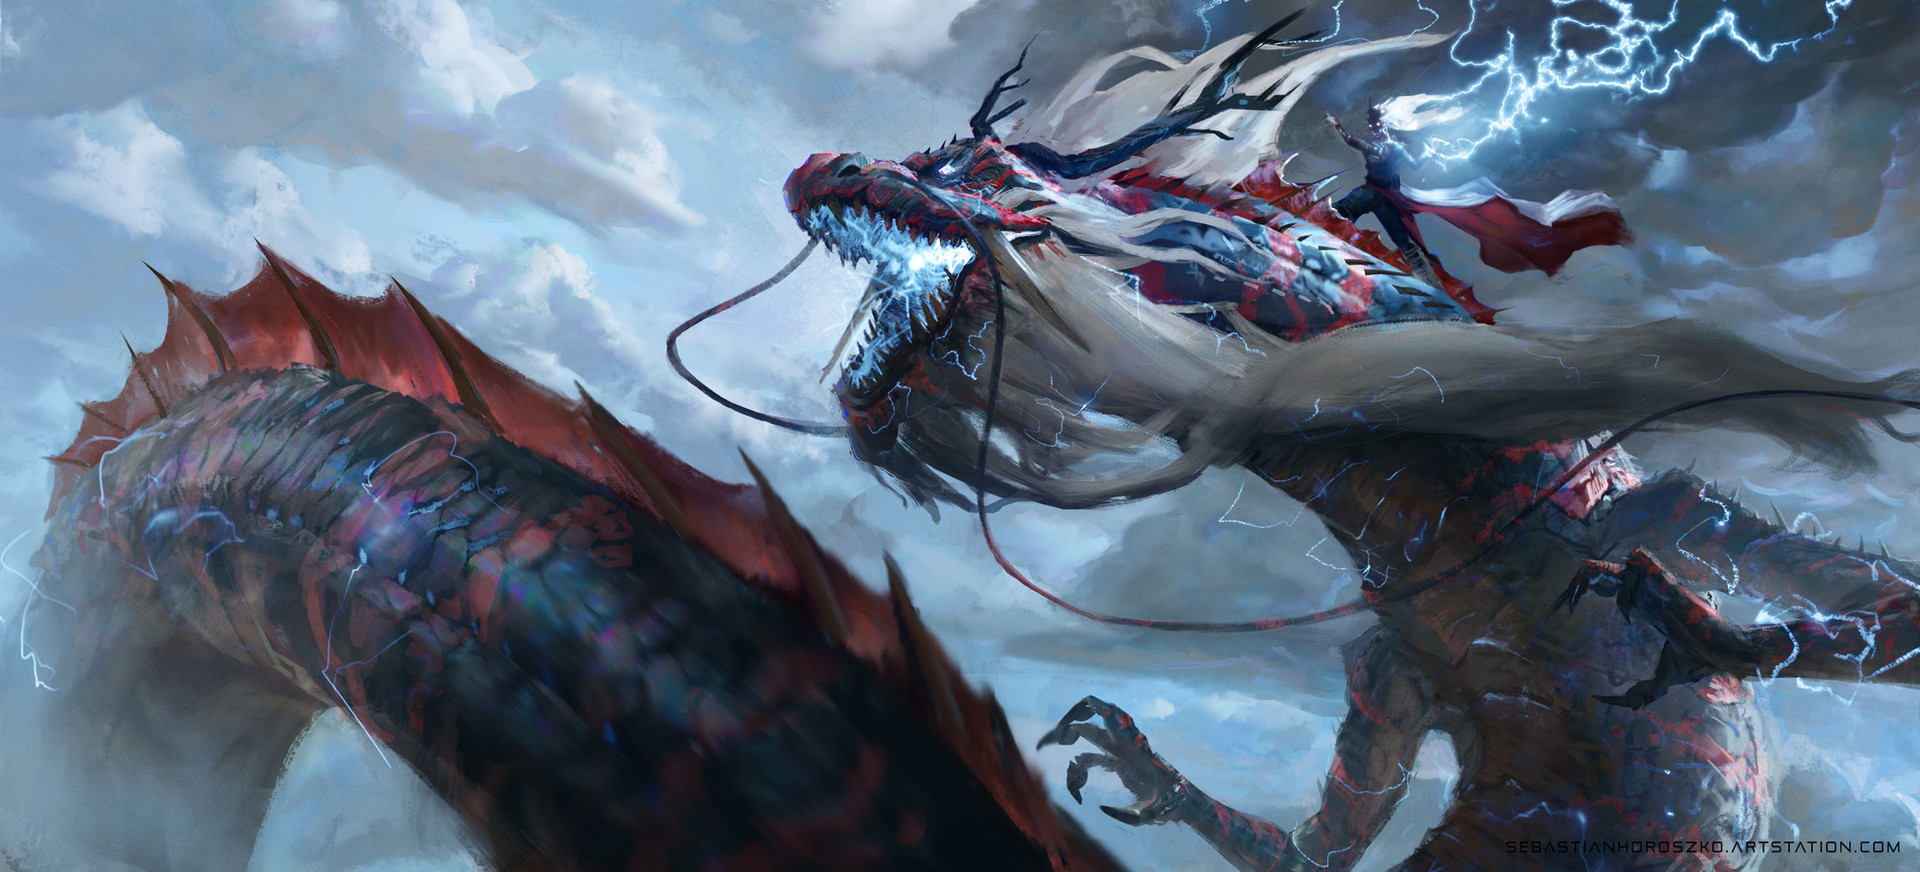 Artstation - Dragon Twins Sebastian Horoszko